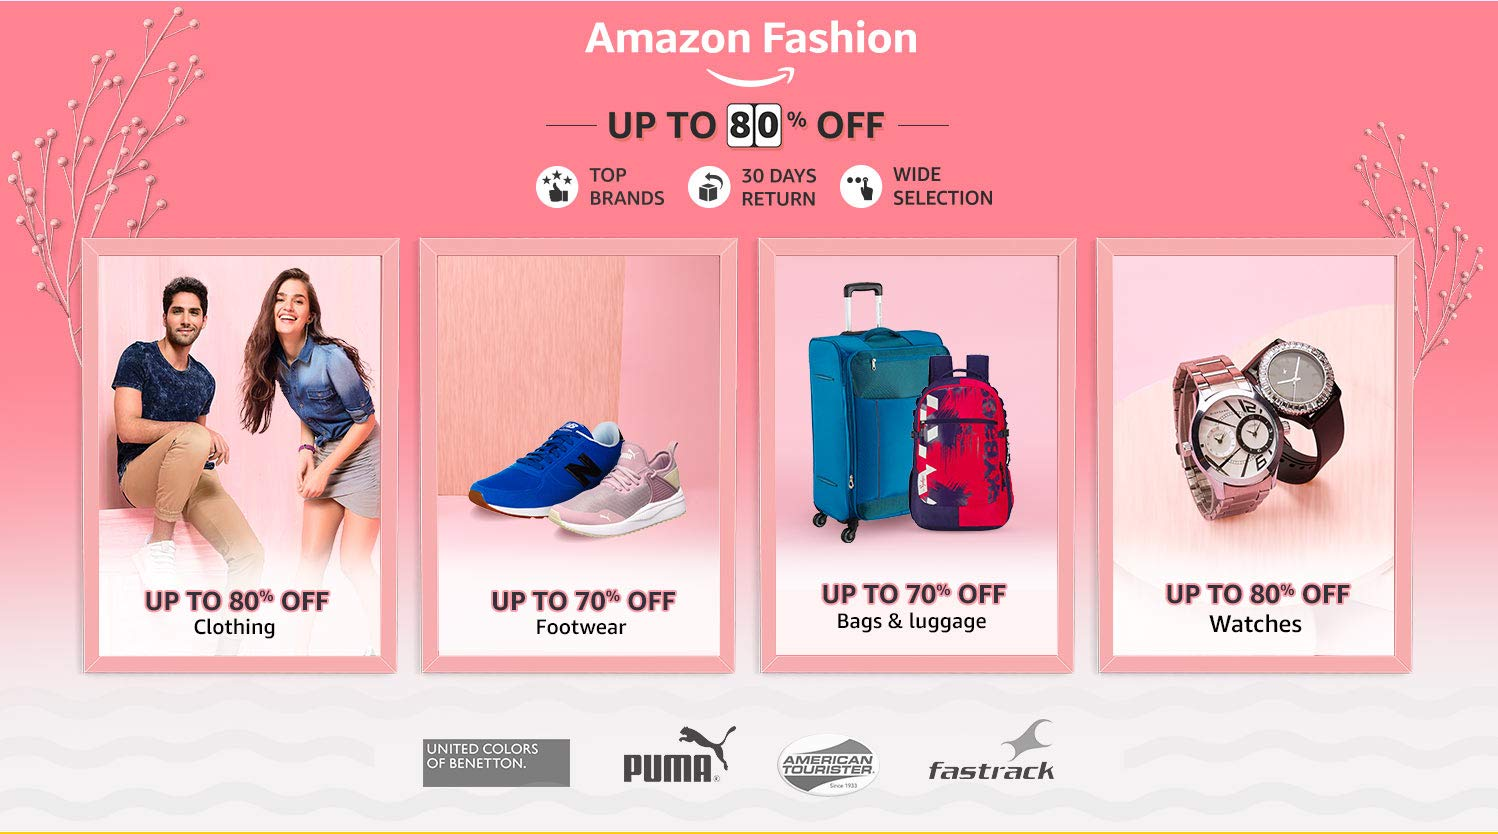 Amazon Fashion Offers